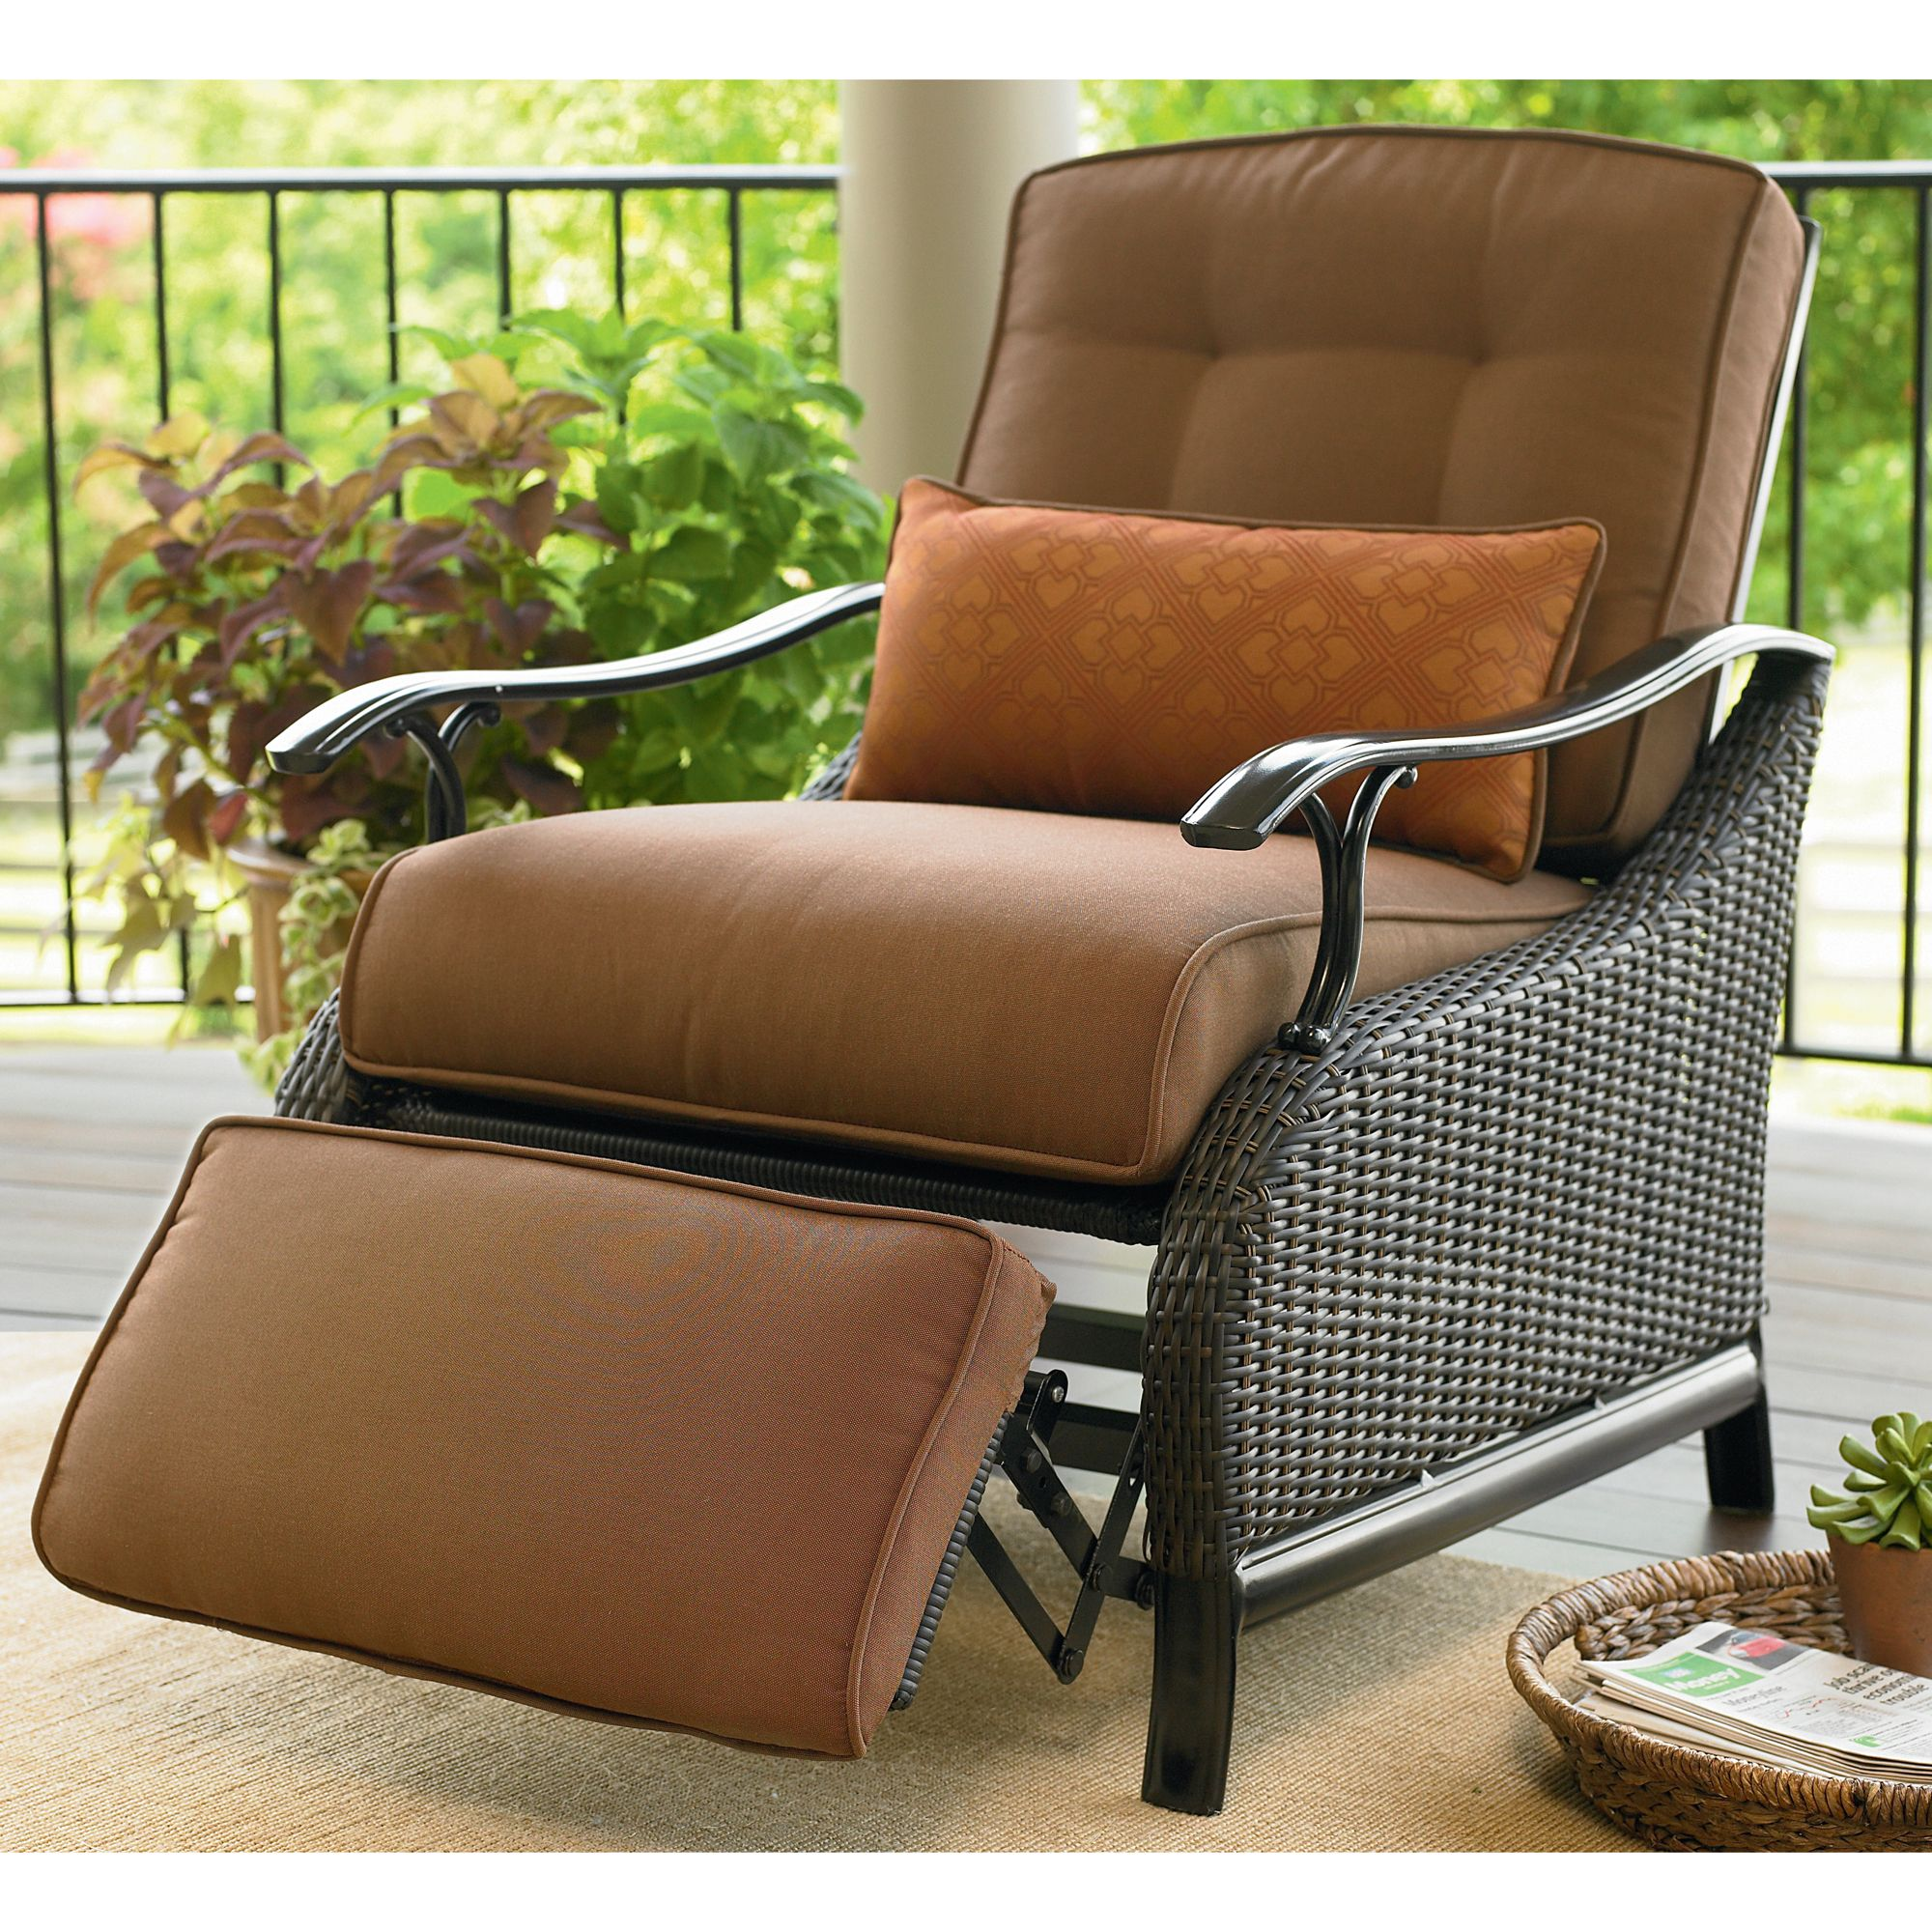 Outdoor Reclining Chair La Z Boy Outdoor Austin Recliner Shop Your Way Online